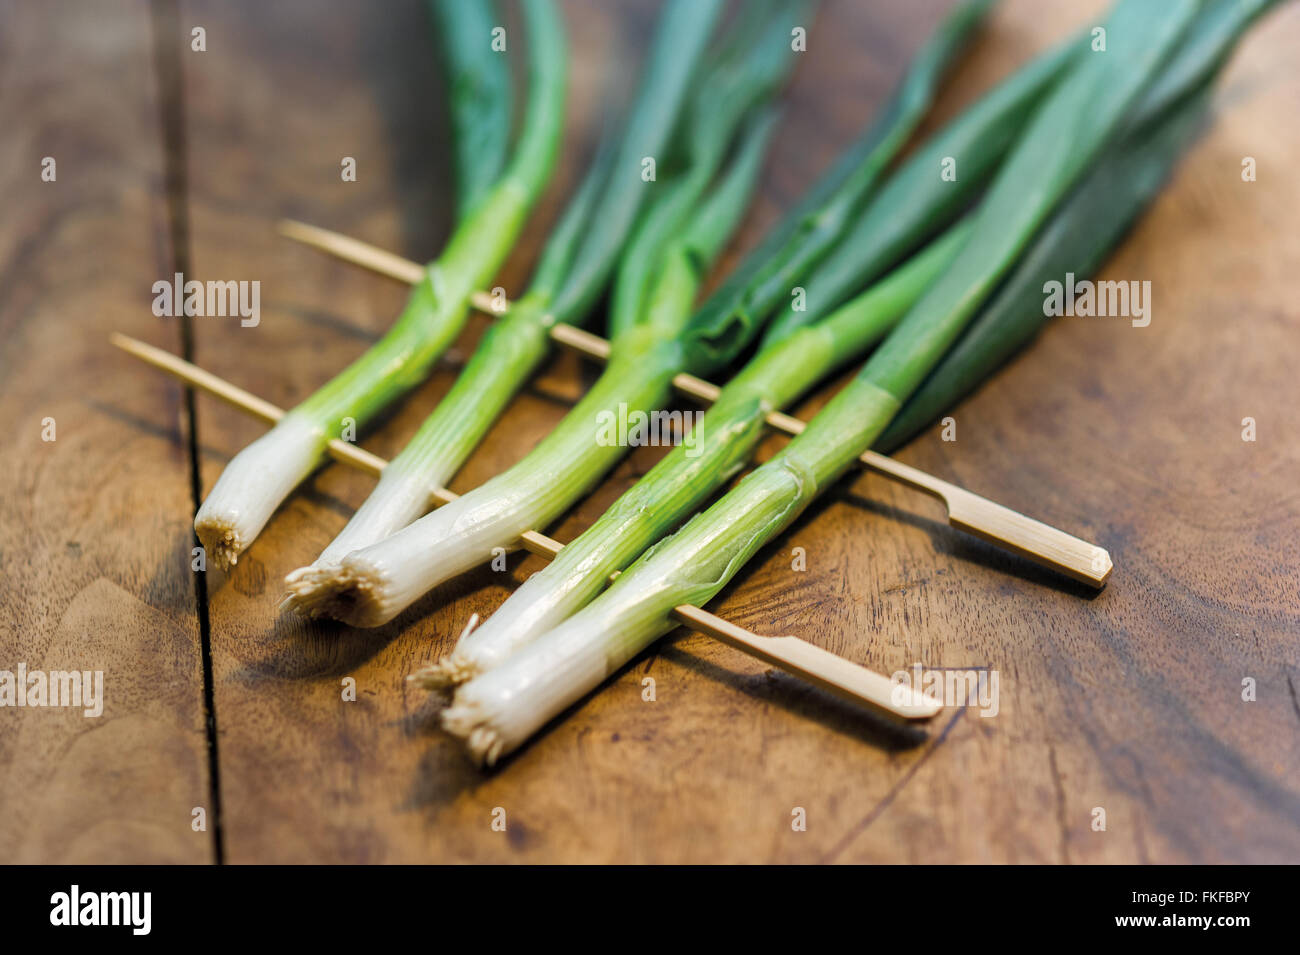 green, scallions, spring, onions, - Stock Image